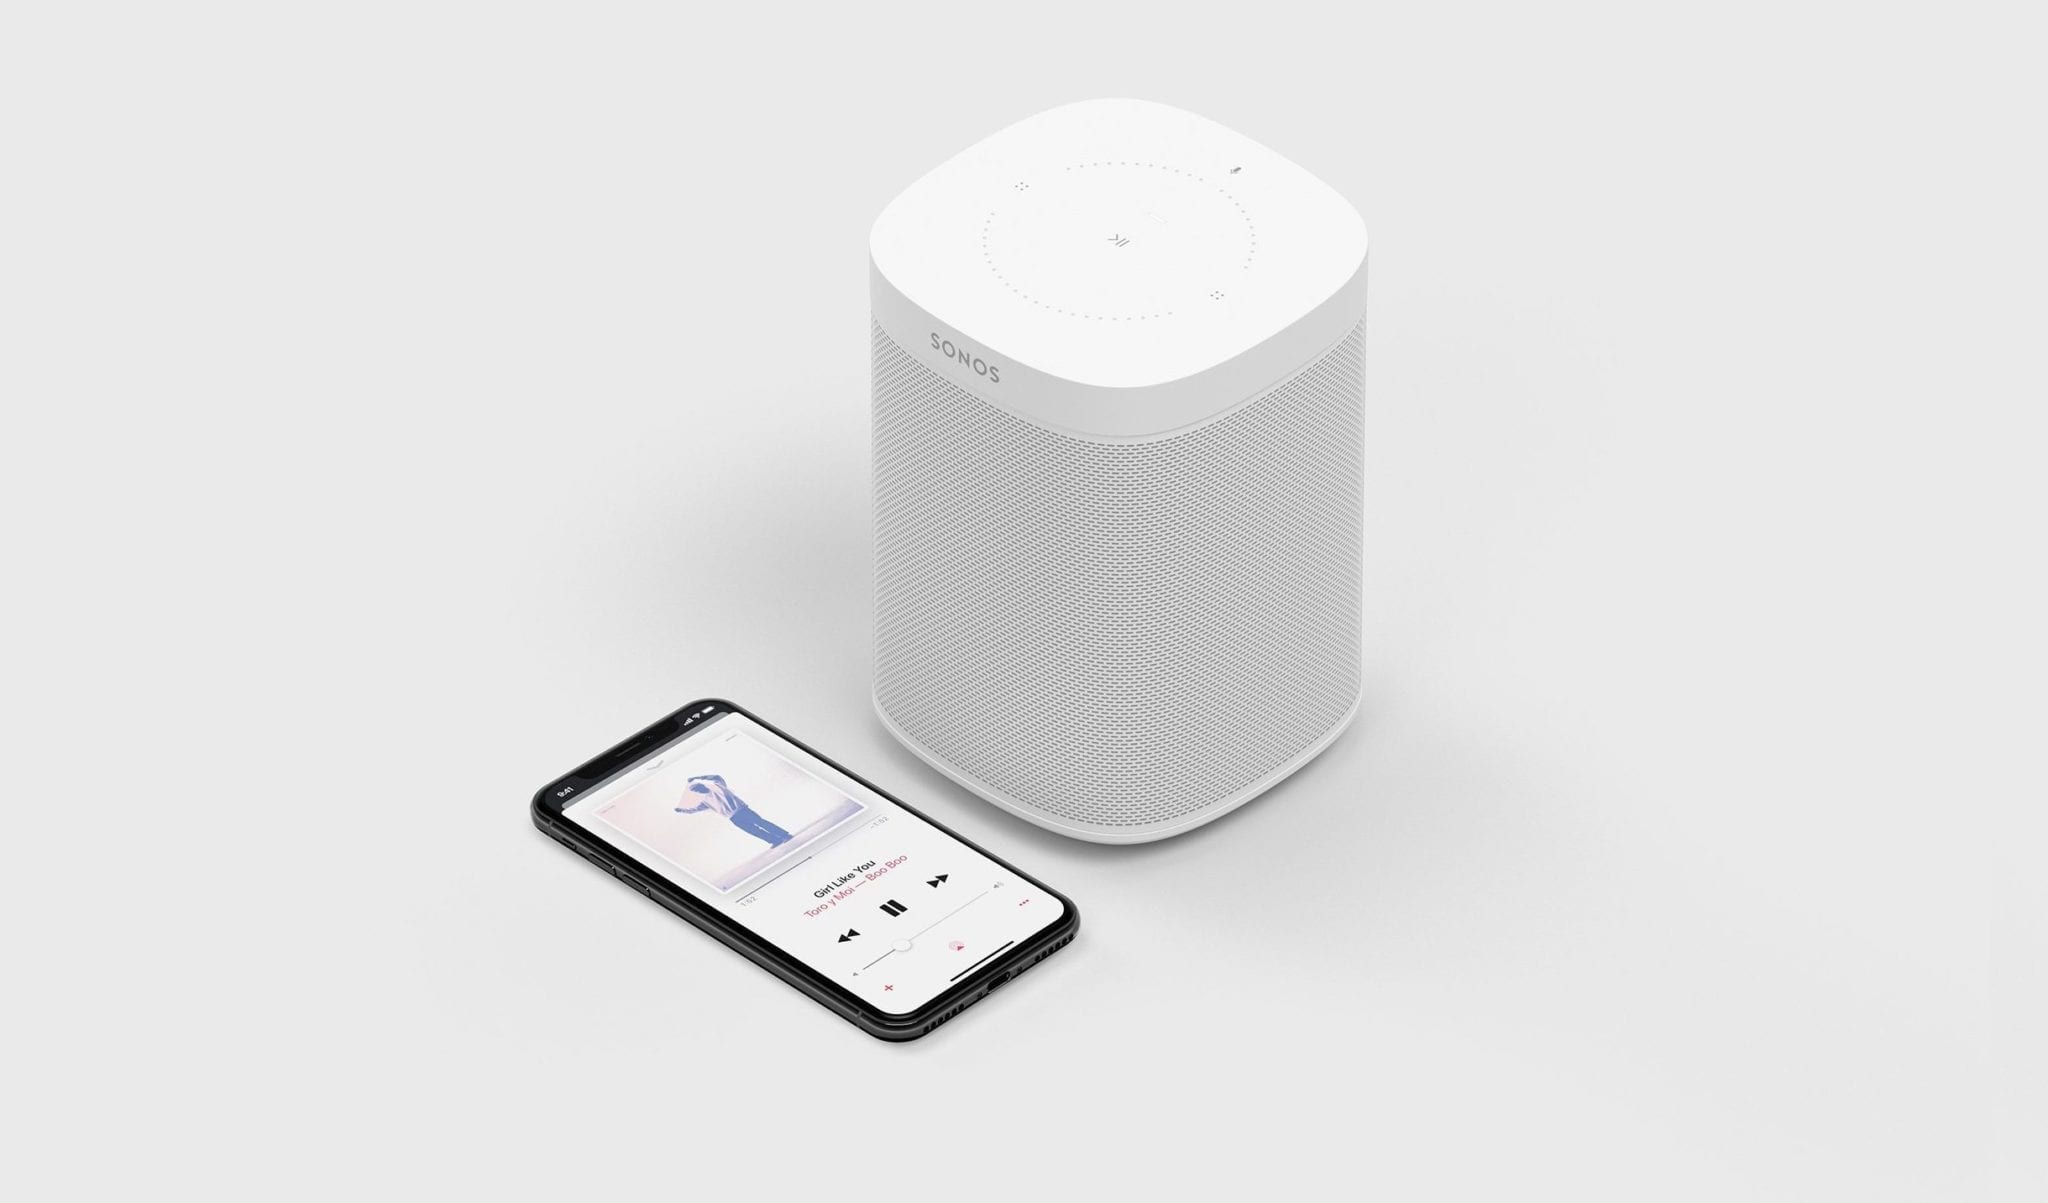 sonos airplay 2